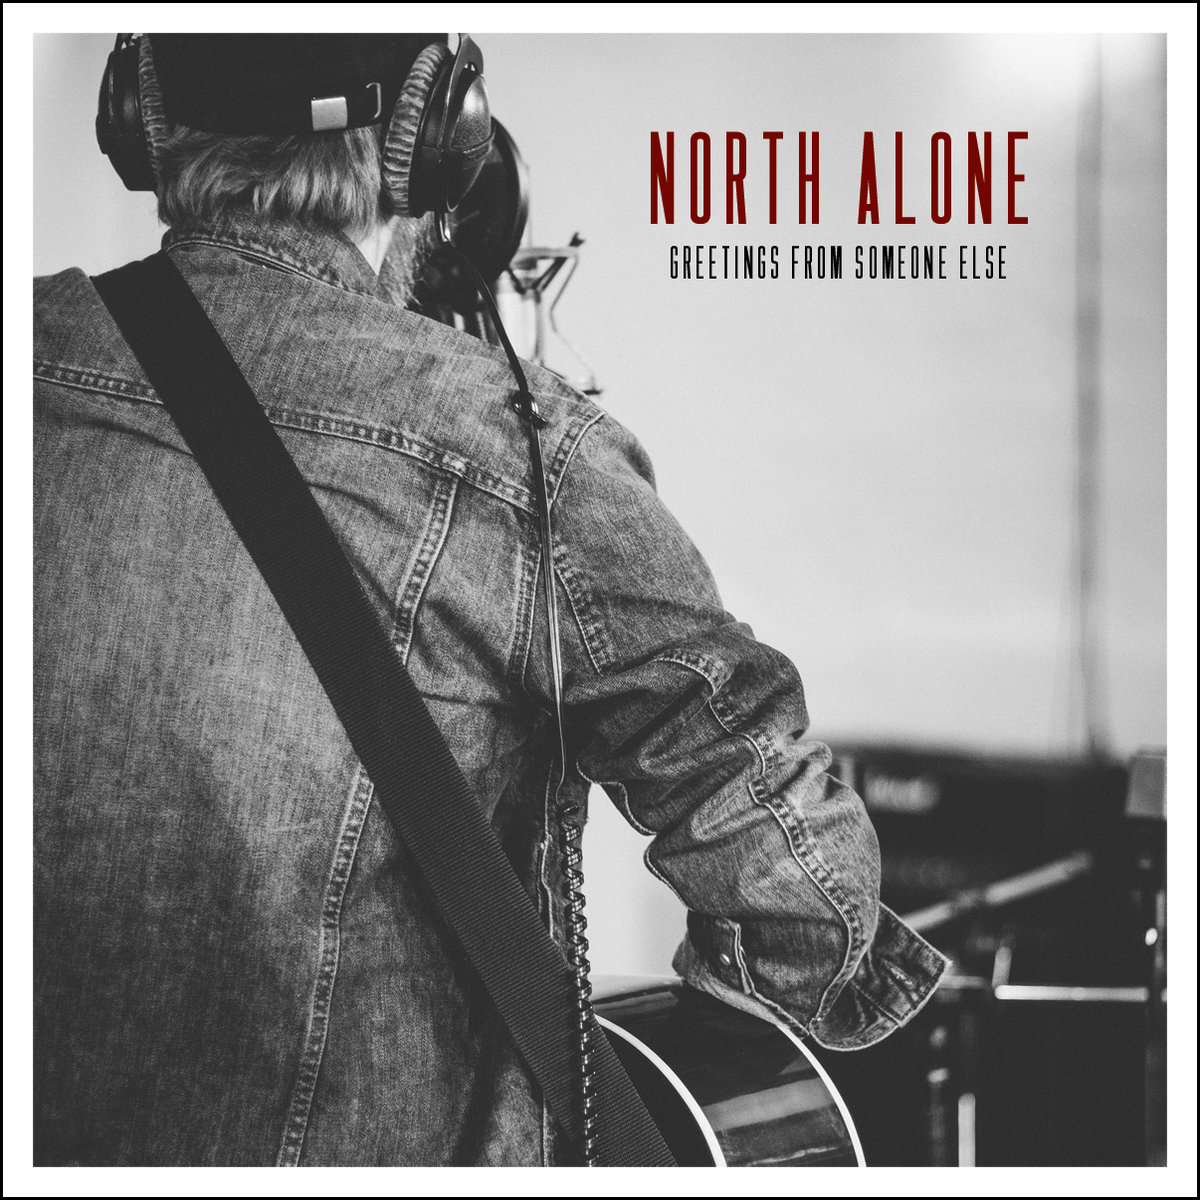 Greetings from someone else north alone from greetings from someone else by north alone m4hsunfo